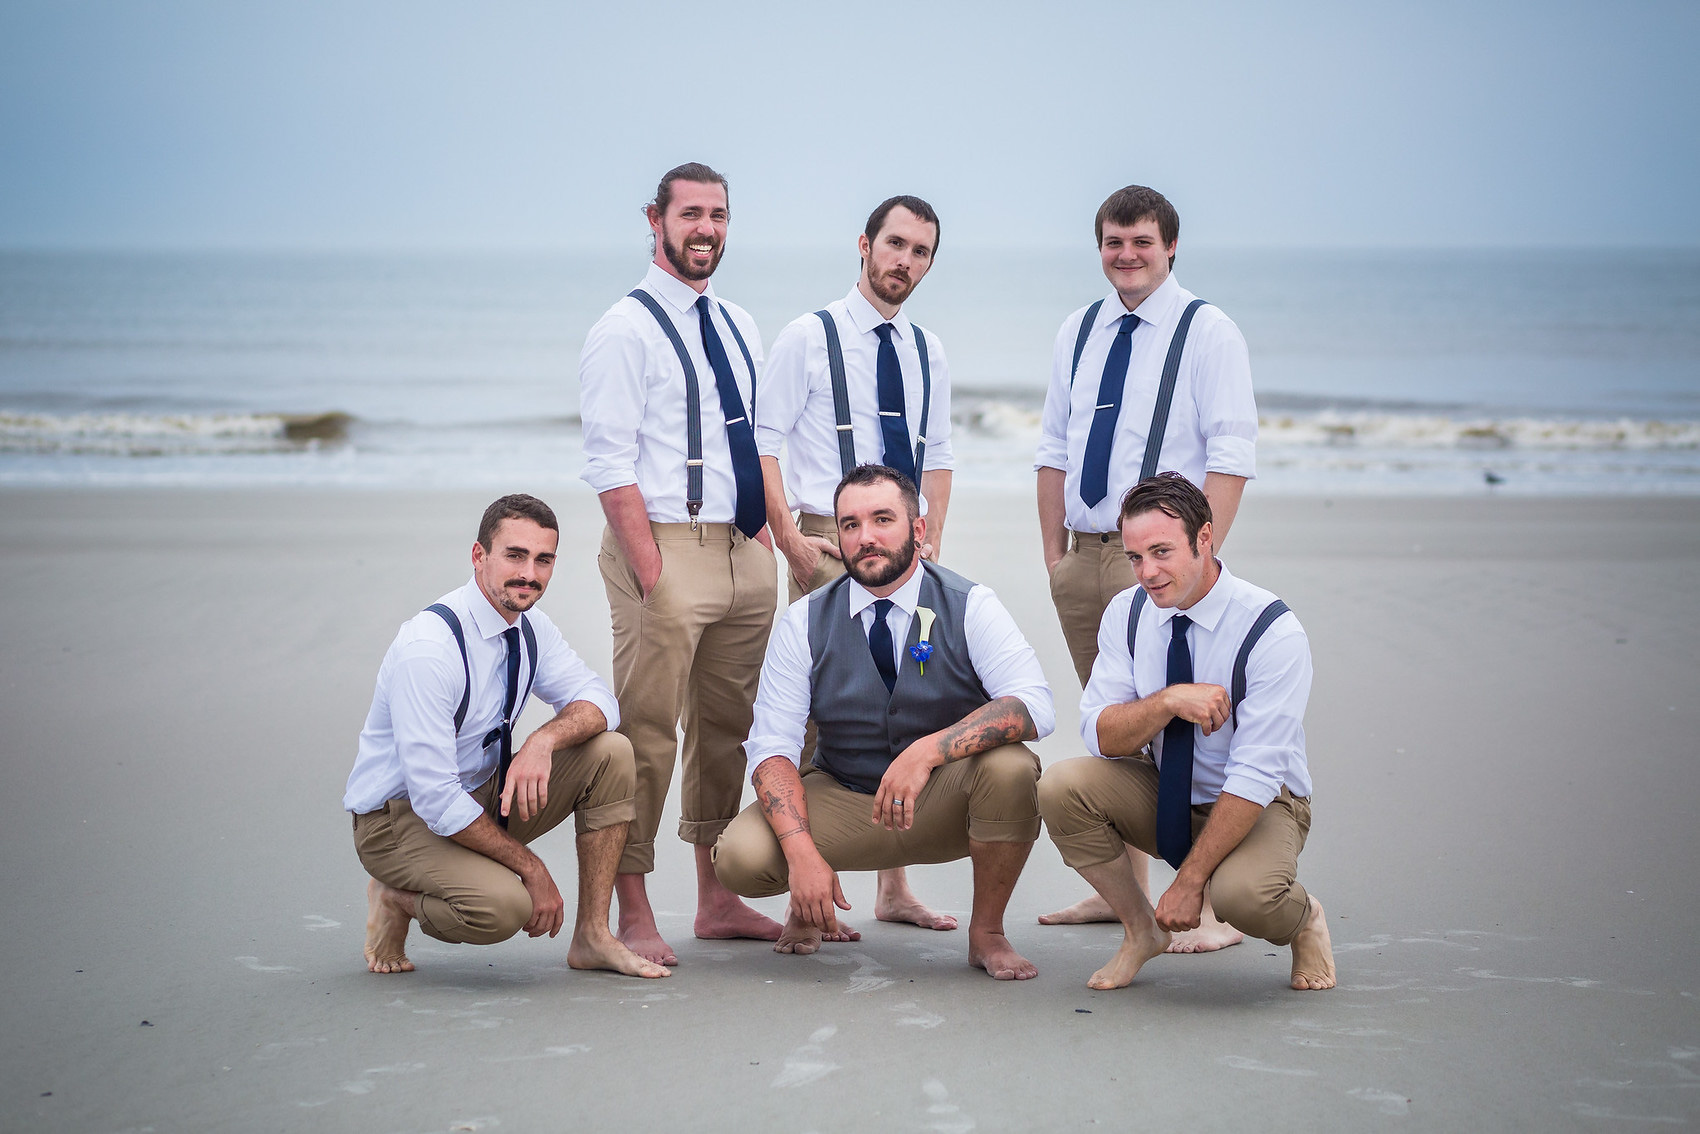 adam-szarmack-atlantic-beach-wedding-photographer-mayport-40.jpg